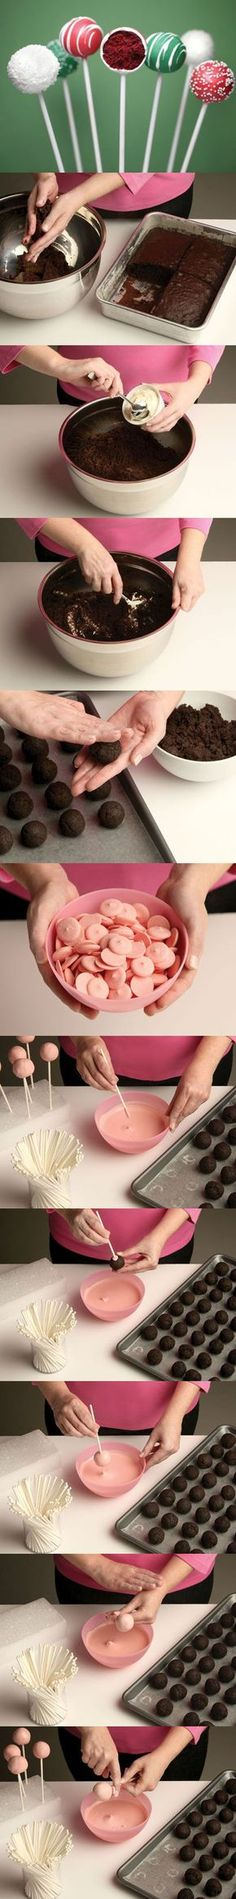 DIY - How to make cake pops, just like the ones sold at Starbucks, only, I suspect, cheaper.